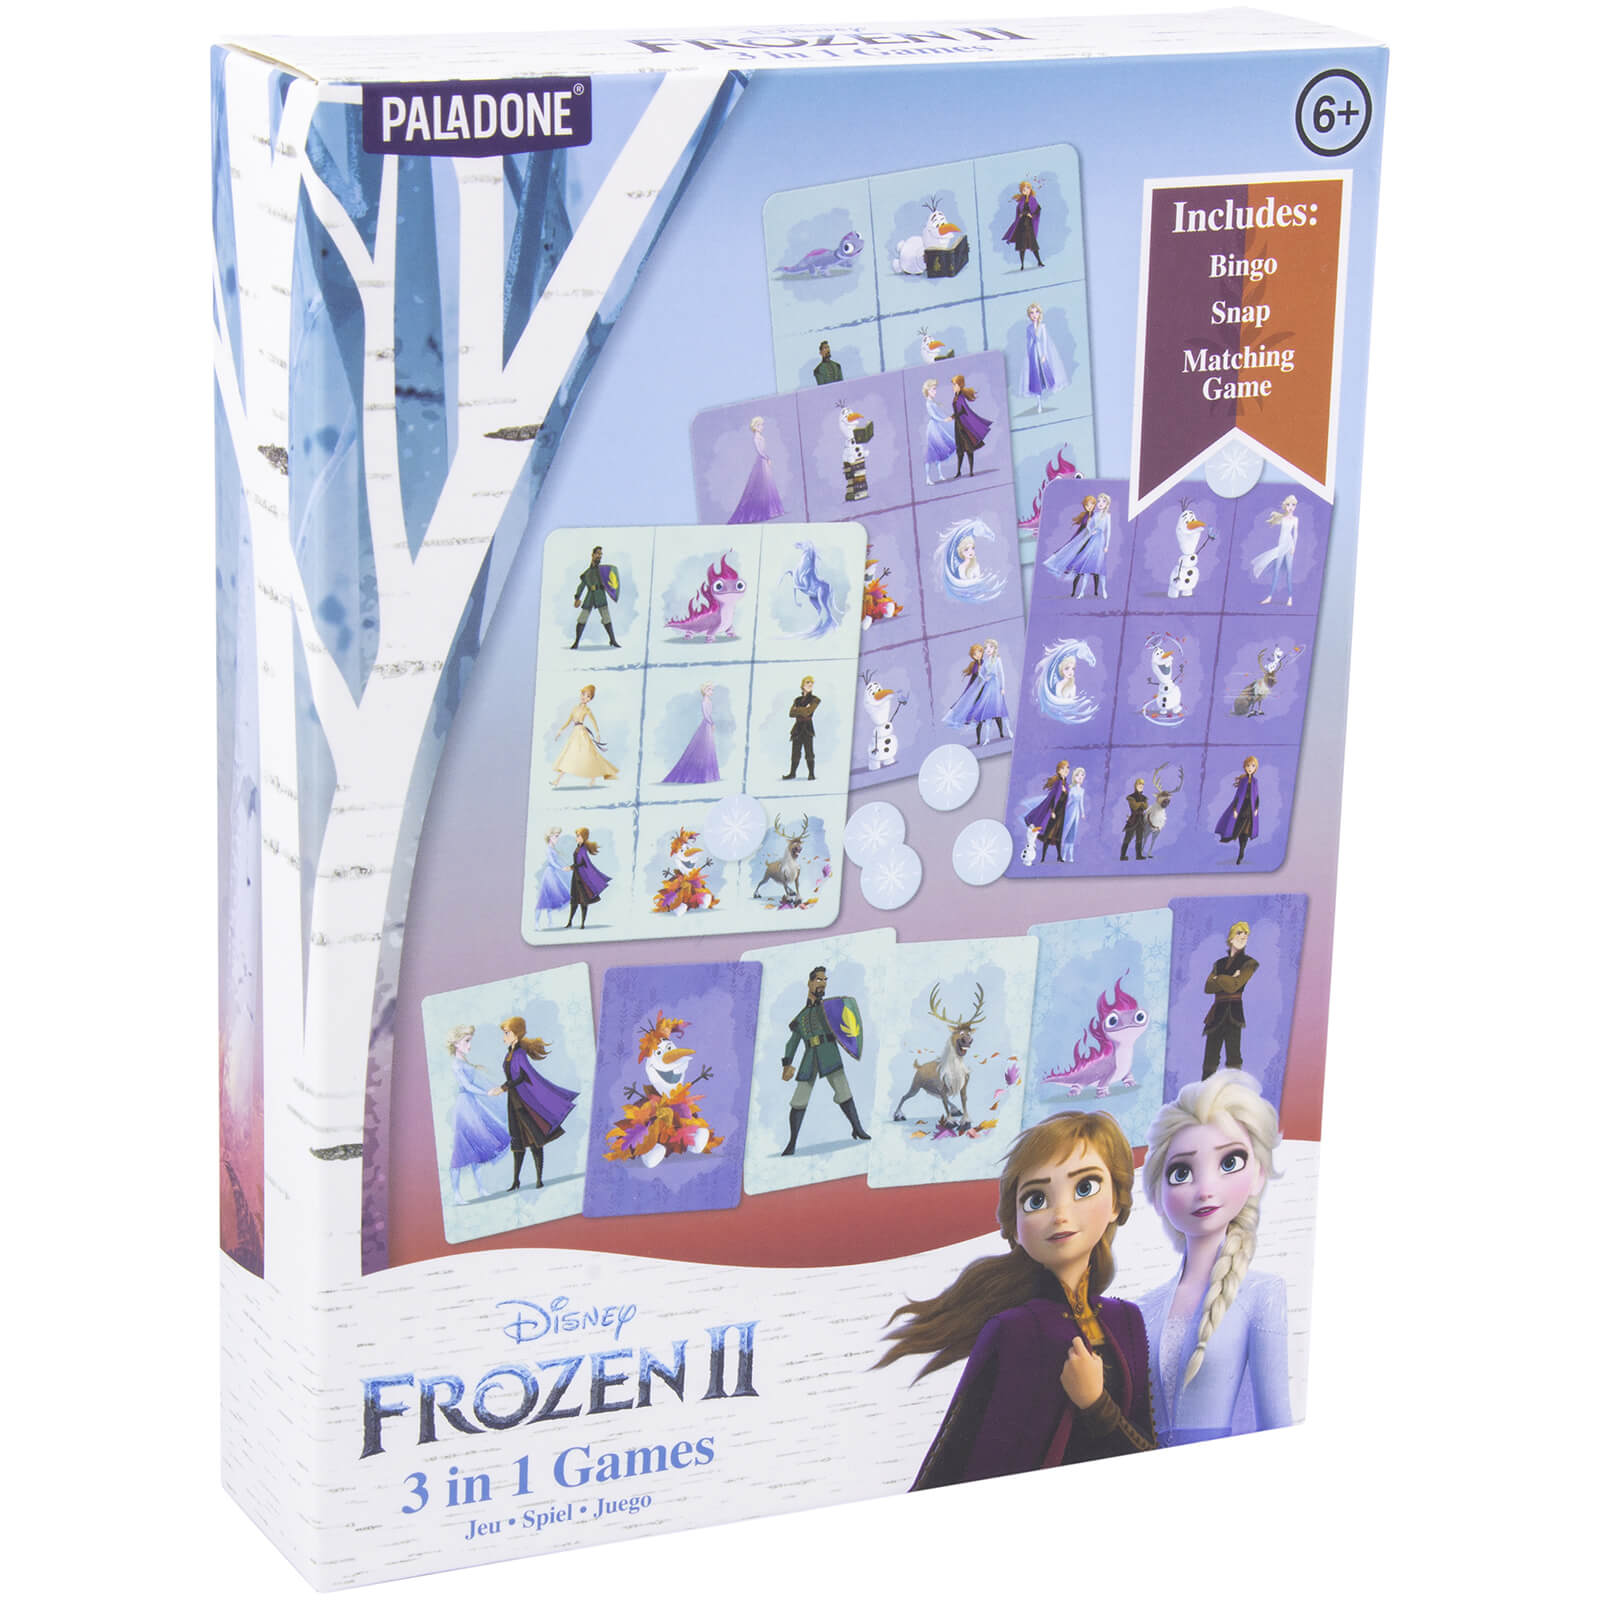 Image of Frozen 2 - 3 in 1 Games